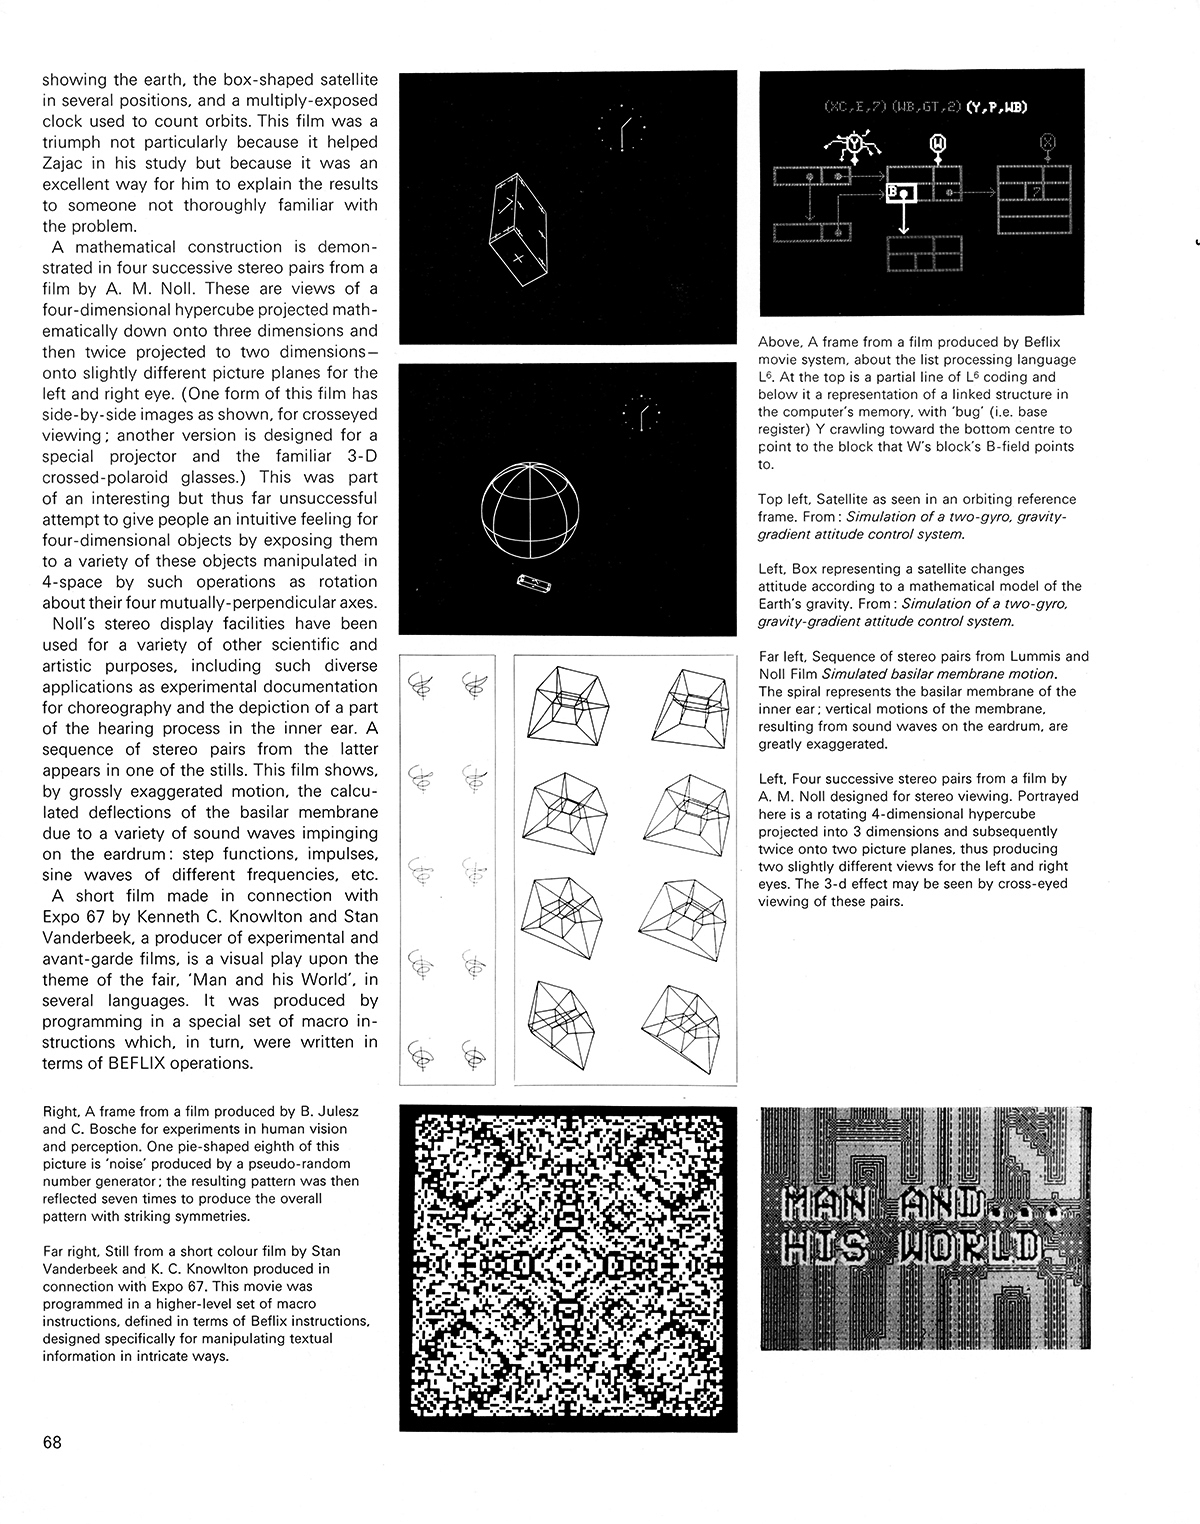 Computer-animated movies by Kenneth C. Knowlton. Cybernetic Serendipity: The Computer and the Arts, Studio International Special Issue, 1968, page 68.